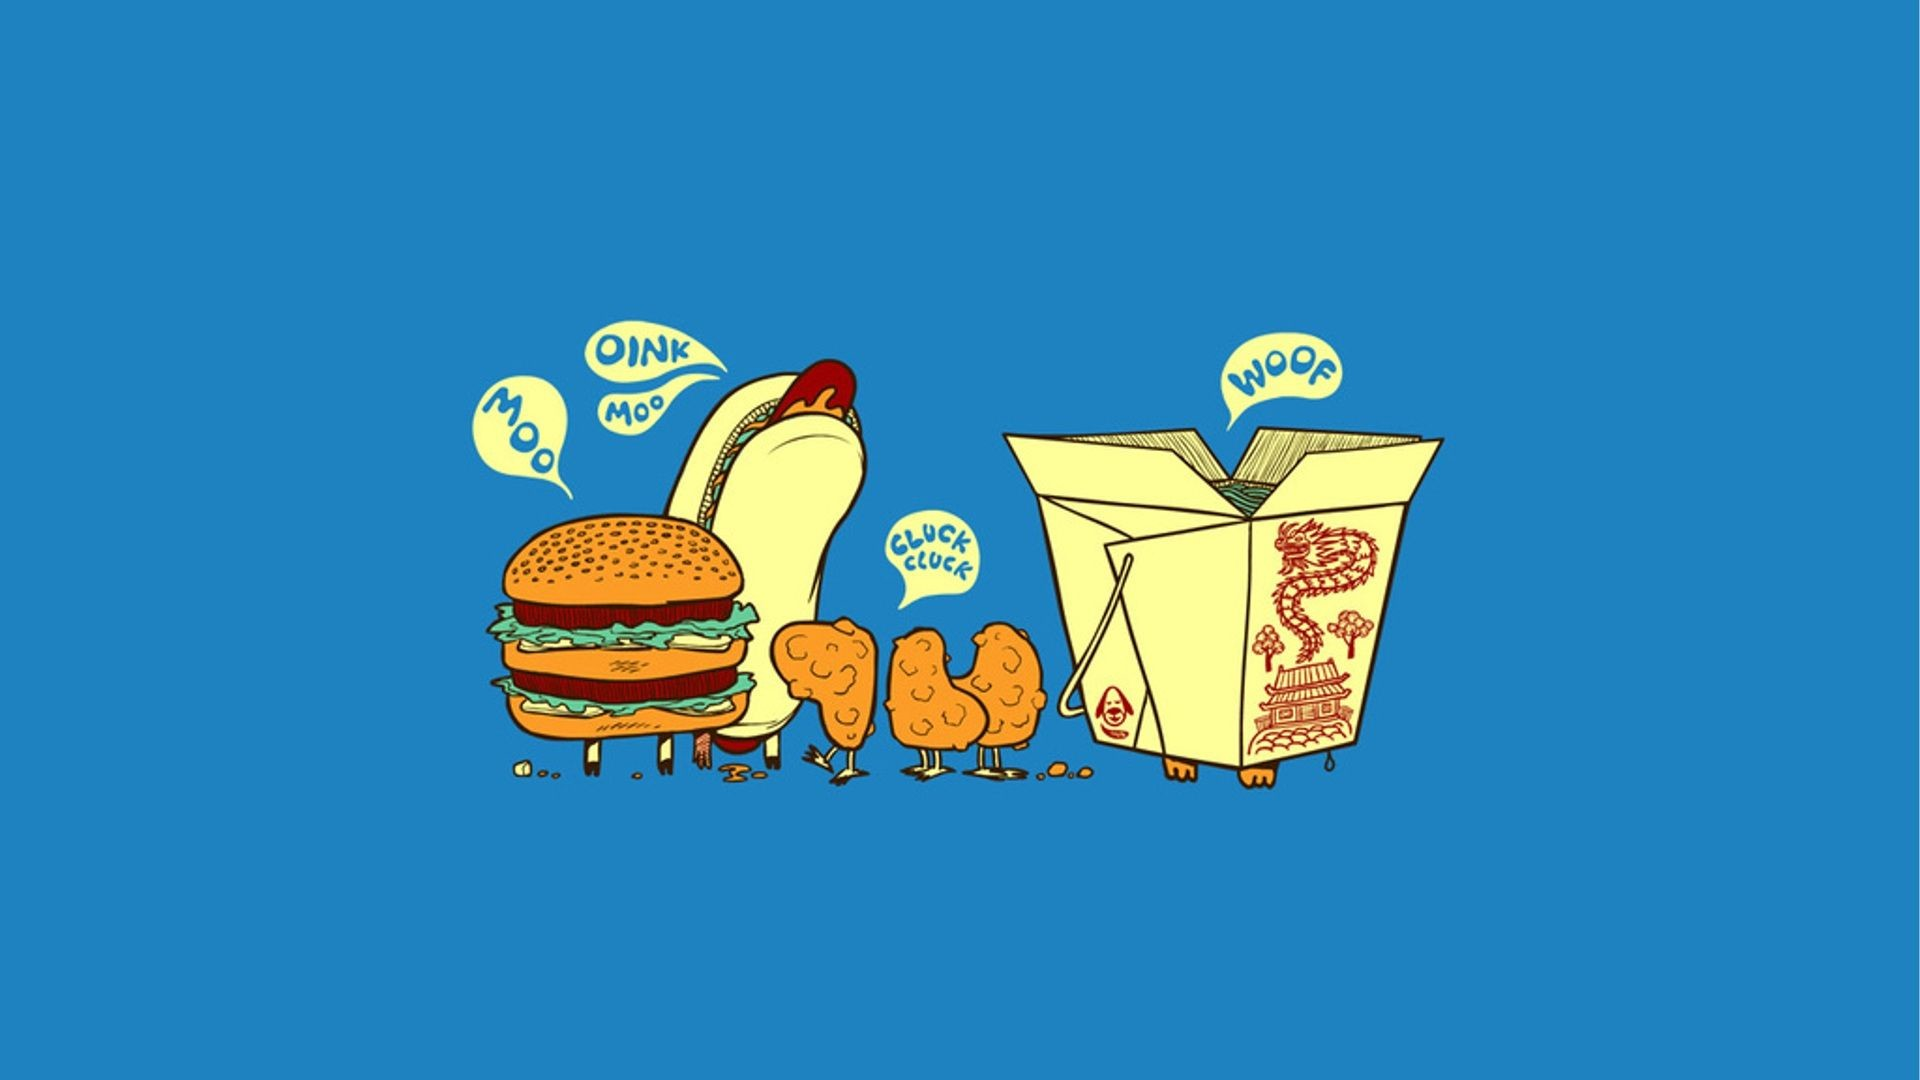 Cute cartoon food wallpapers 67 images - Cute cartoon hd images ...